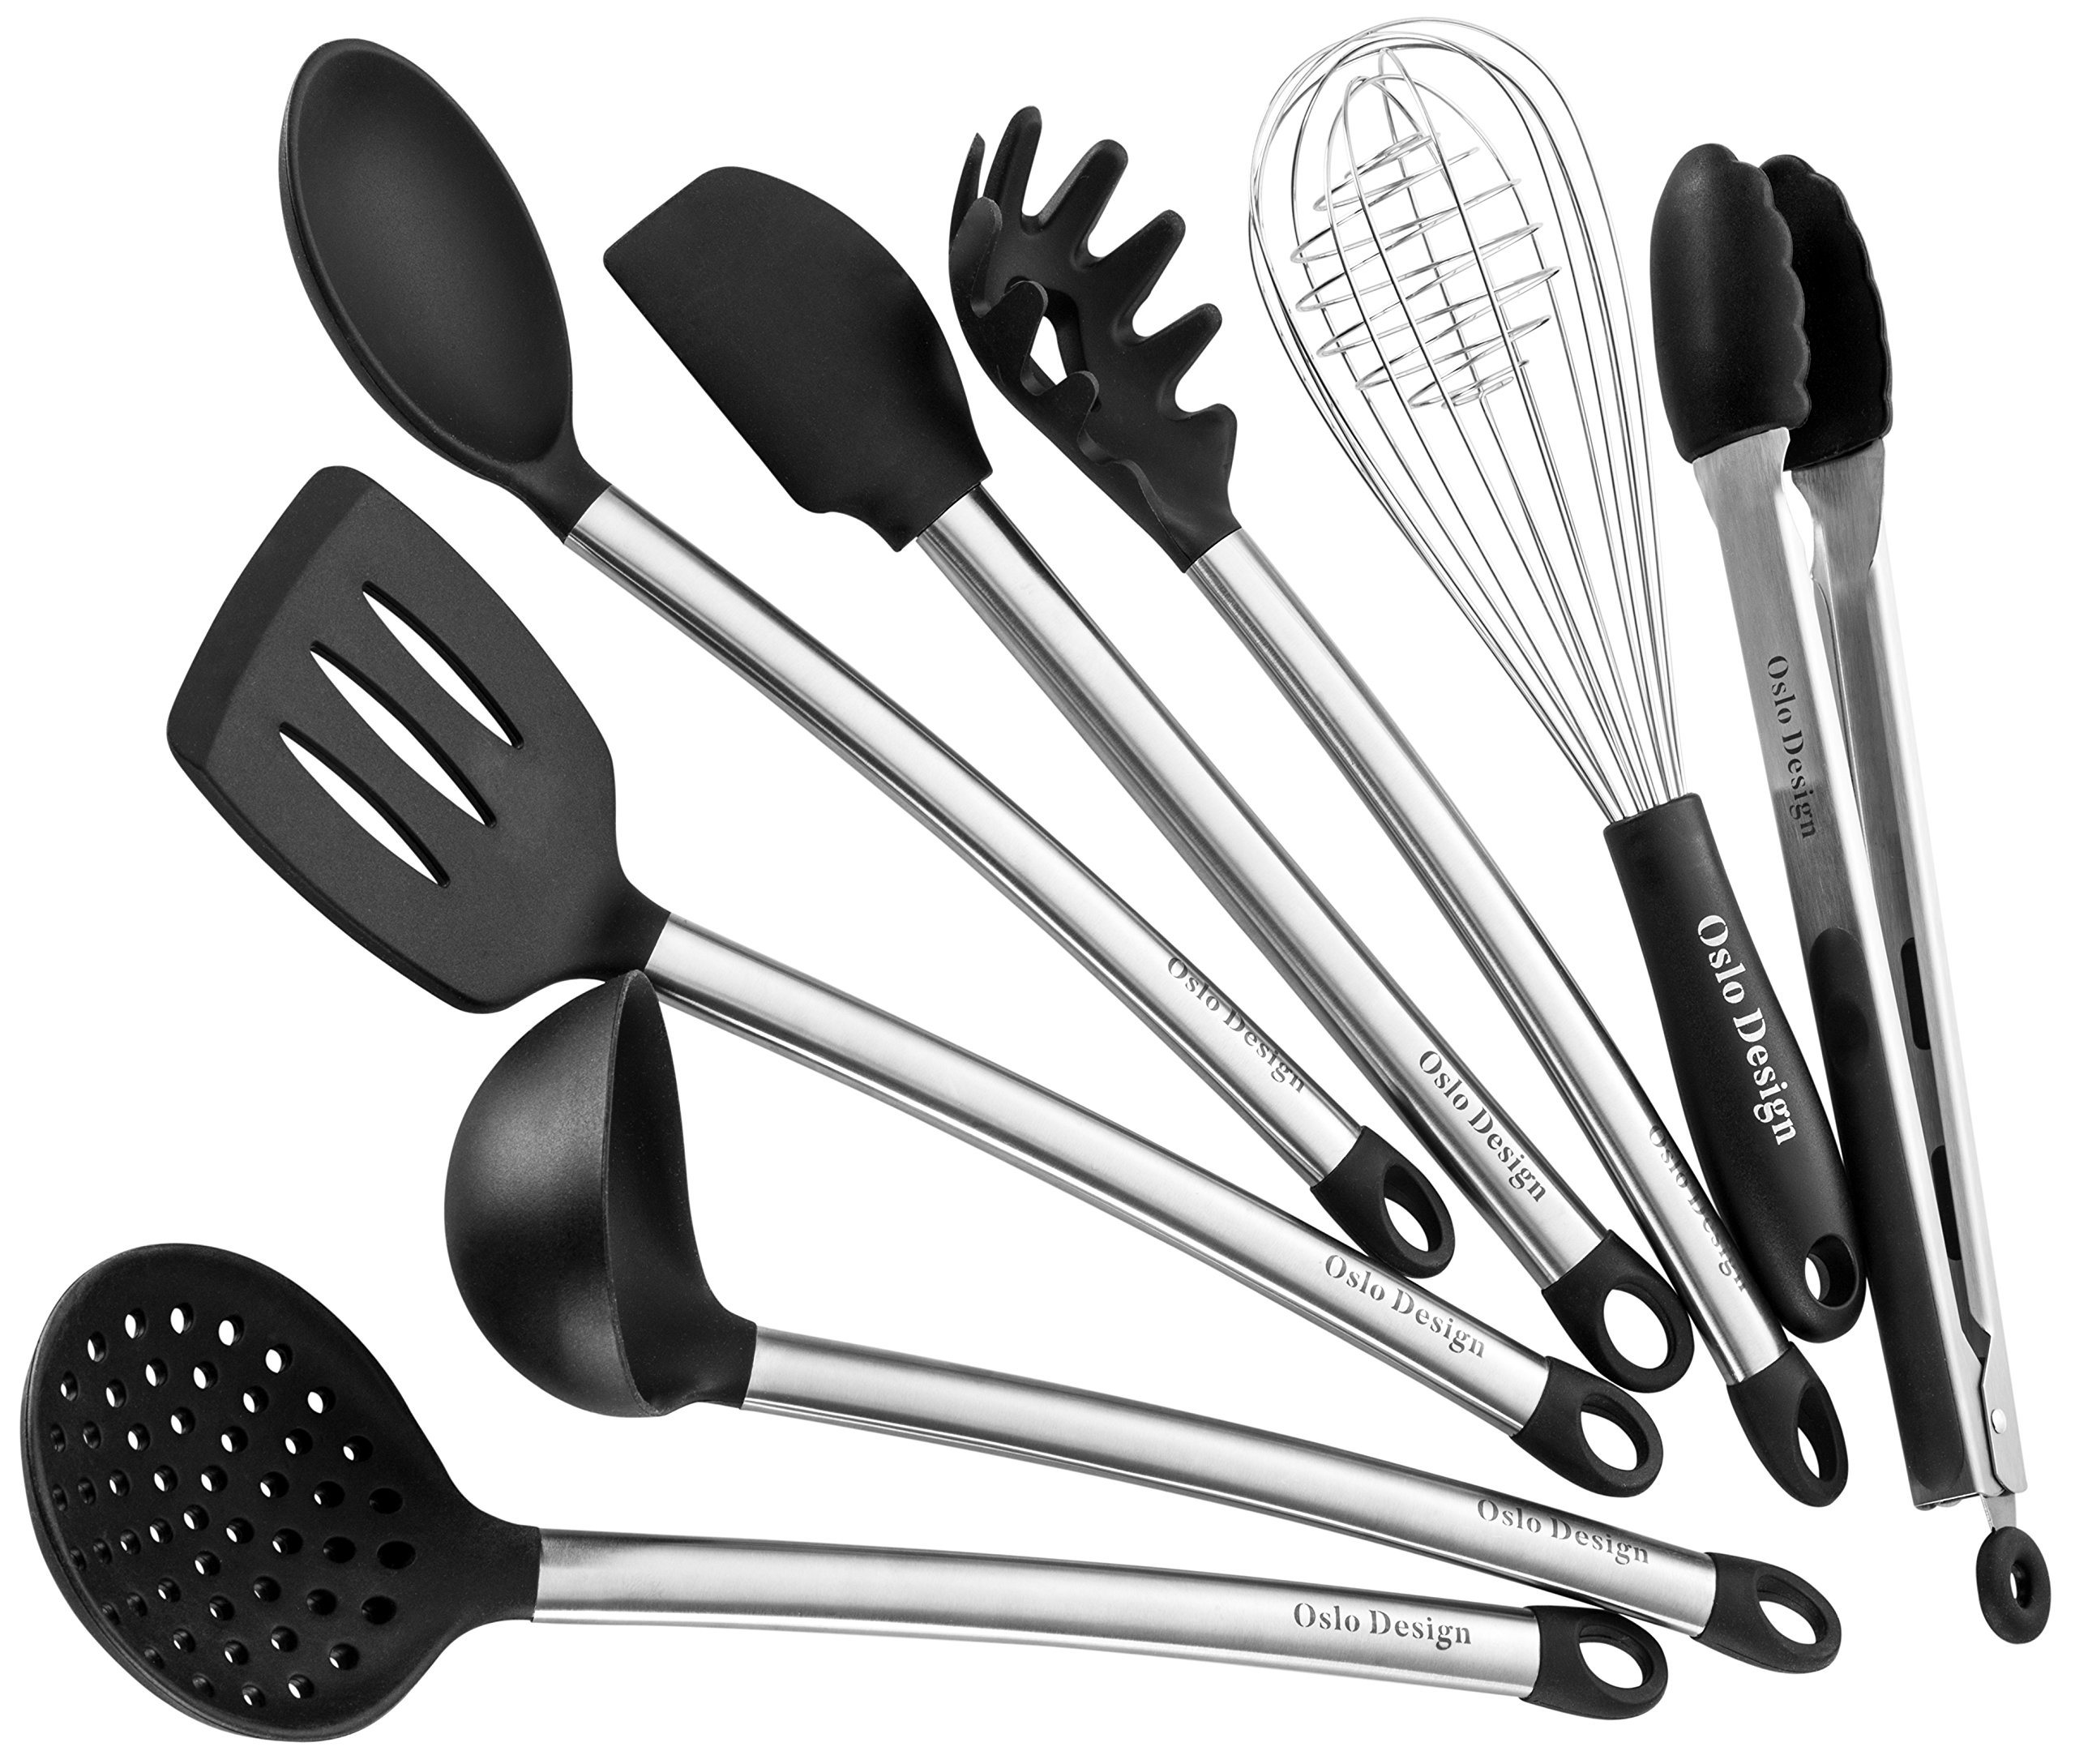 8 Piece Cooking Utensil Set -Made Of